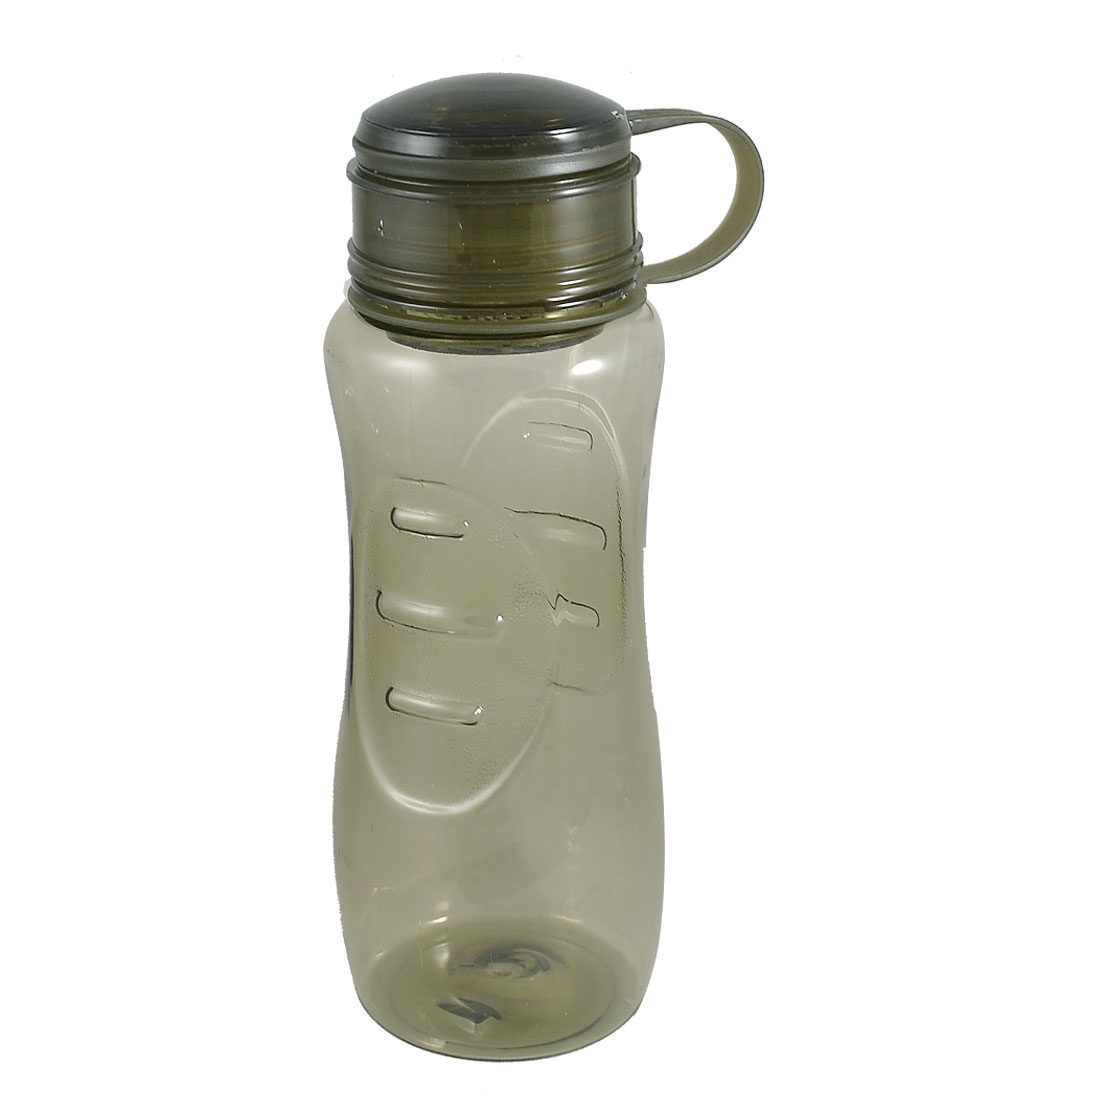 Tea Strainer Design Army Green Plastic Sports Water Bottle 700ml